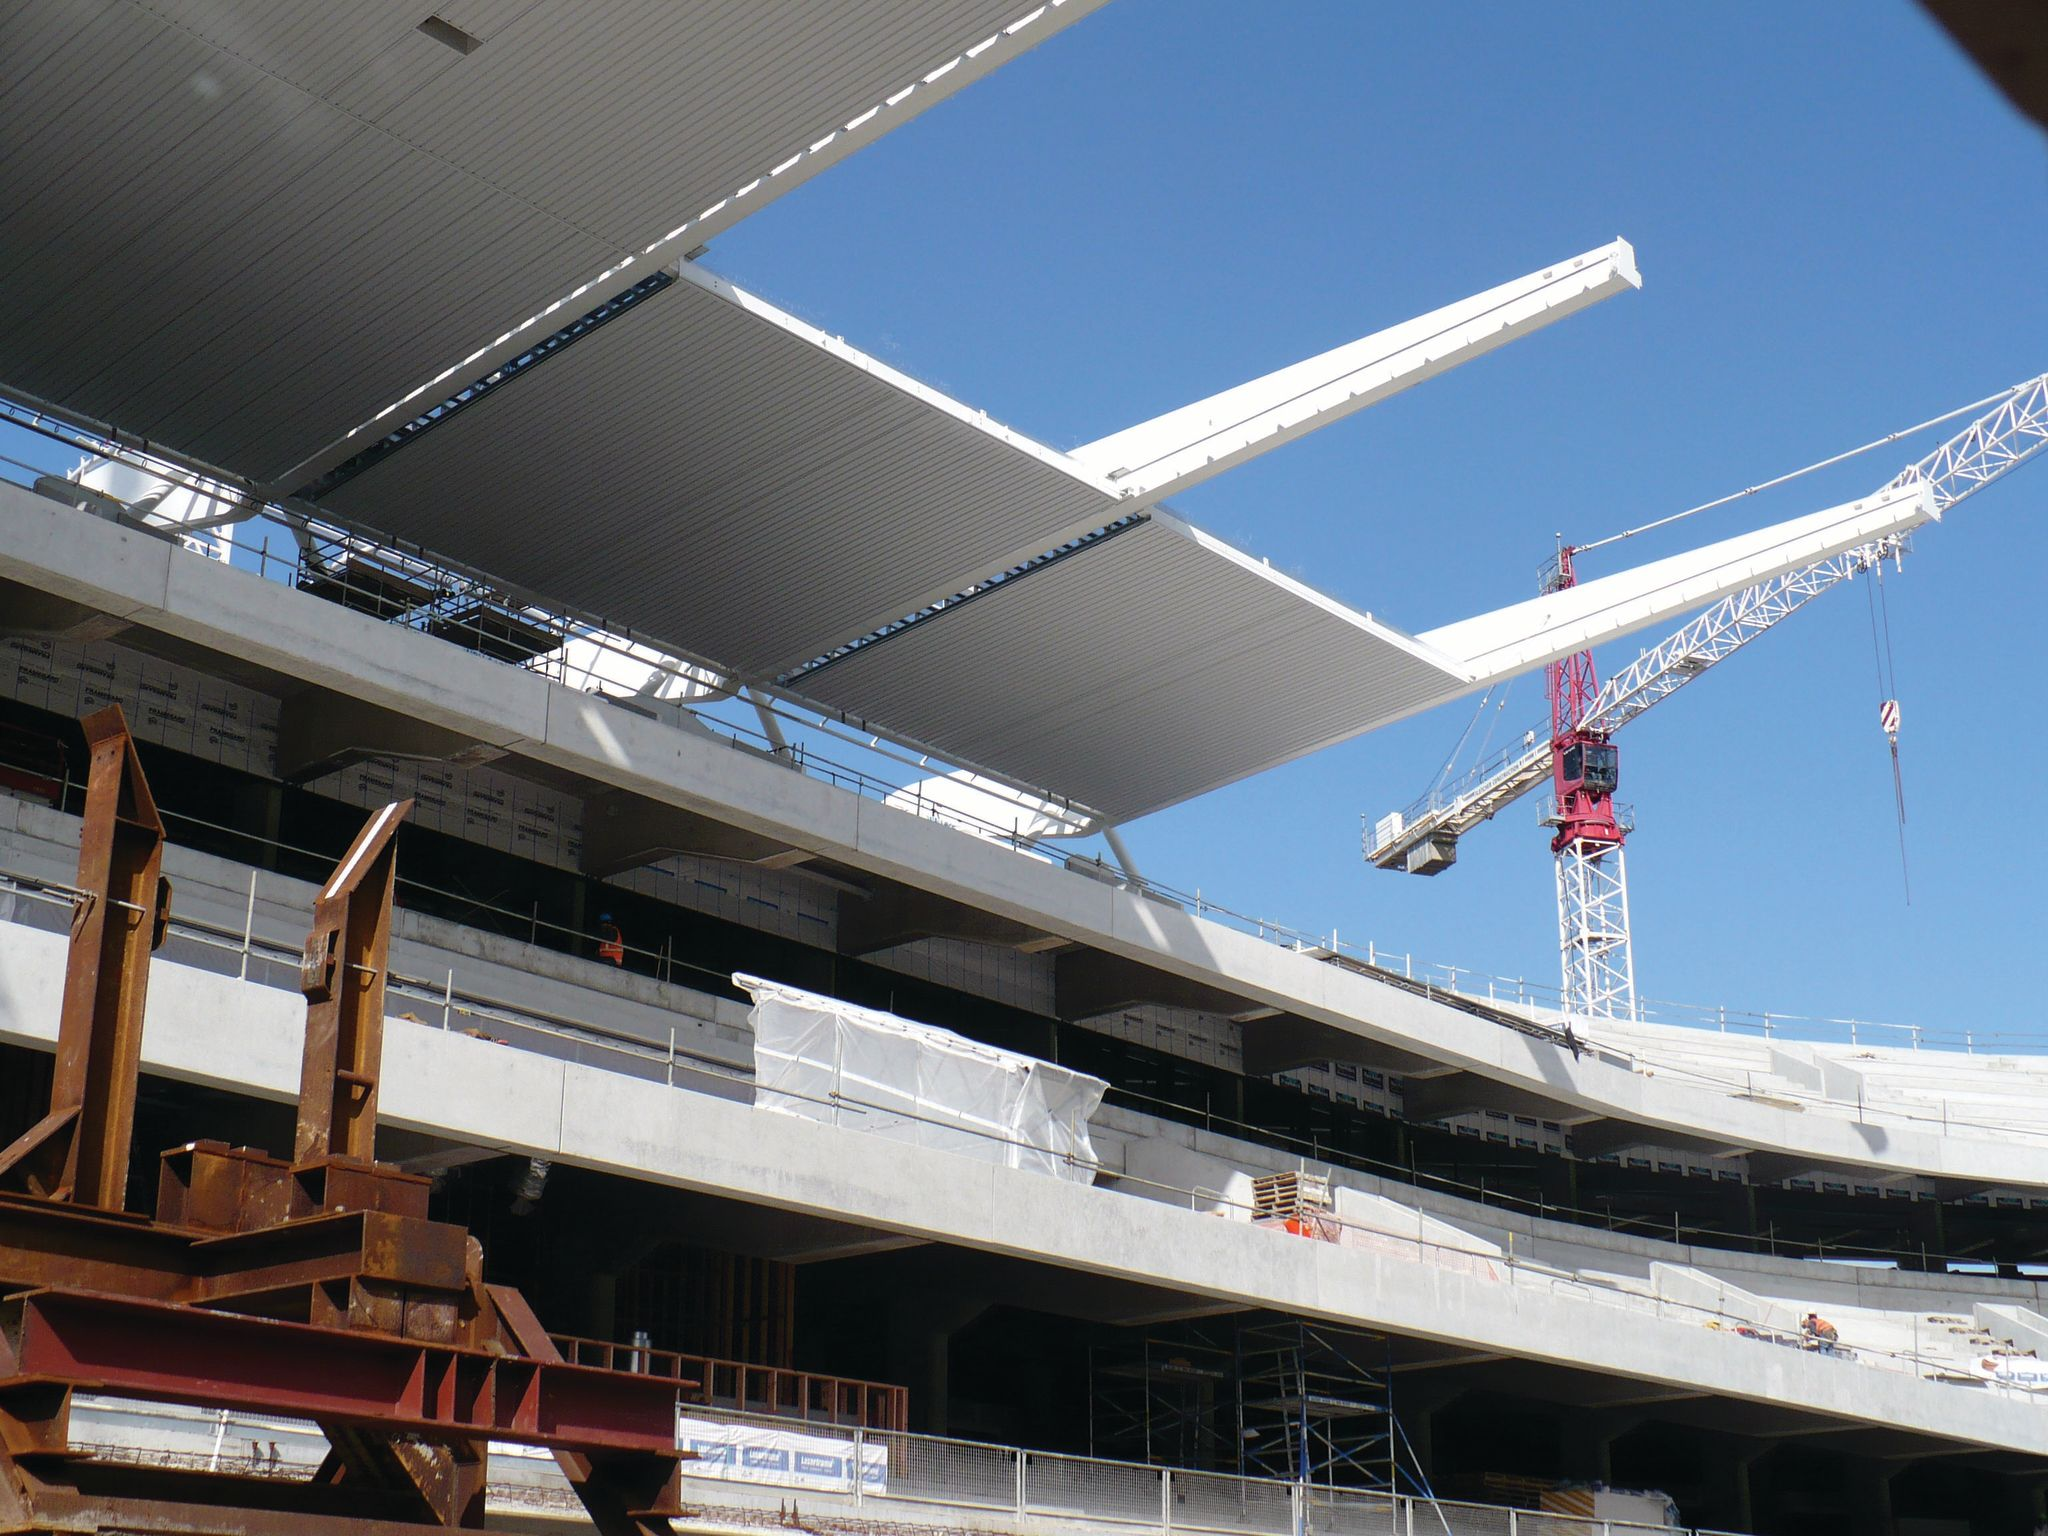 H J Asmuss supplied structural steel for the cover of the South Stand, Eden Park. Constructed for the 2011 Rugby World Cup